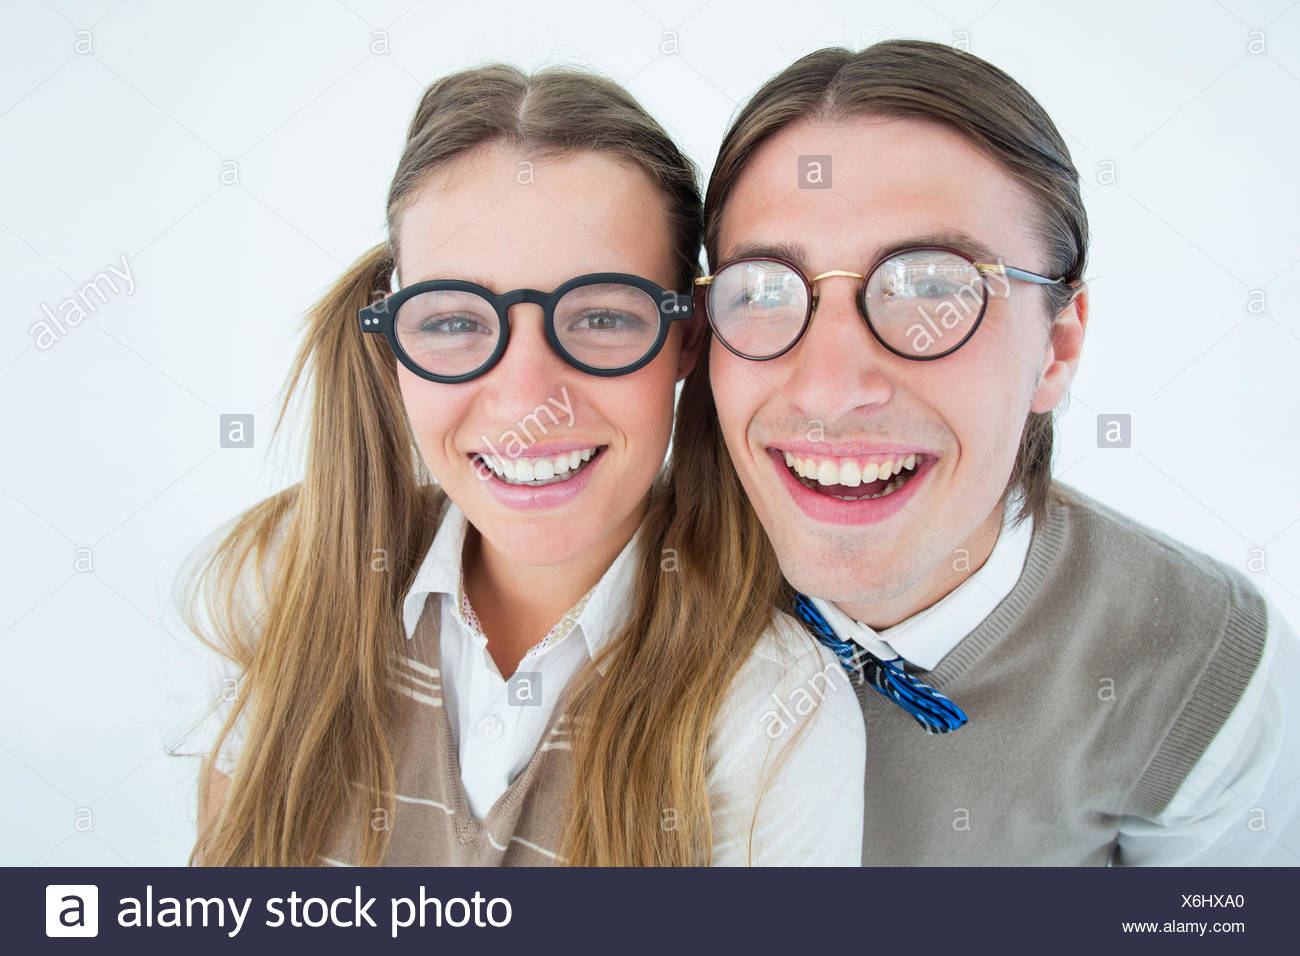 Geeky hipsters smiling at camera - Stock Image